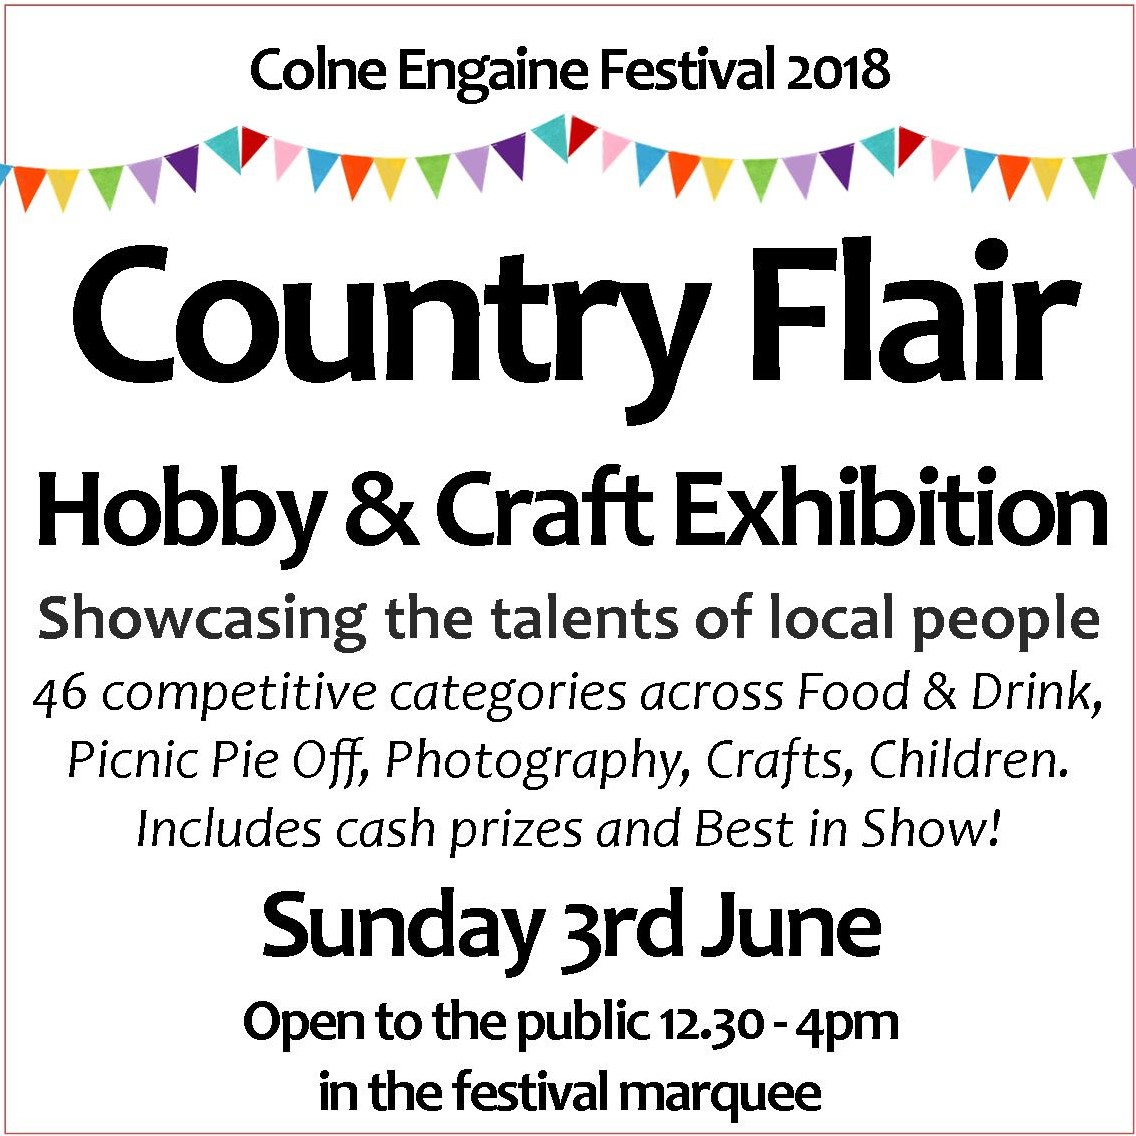 Country Flair Hobby & Craft Exhibition at Colne Engaine Festival